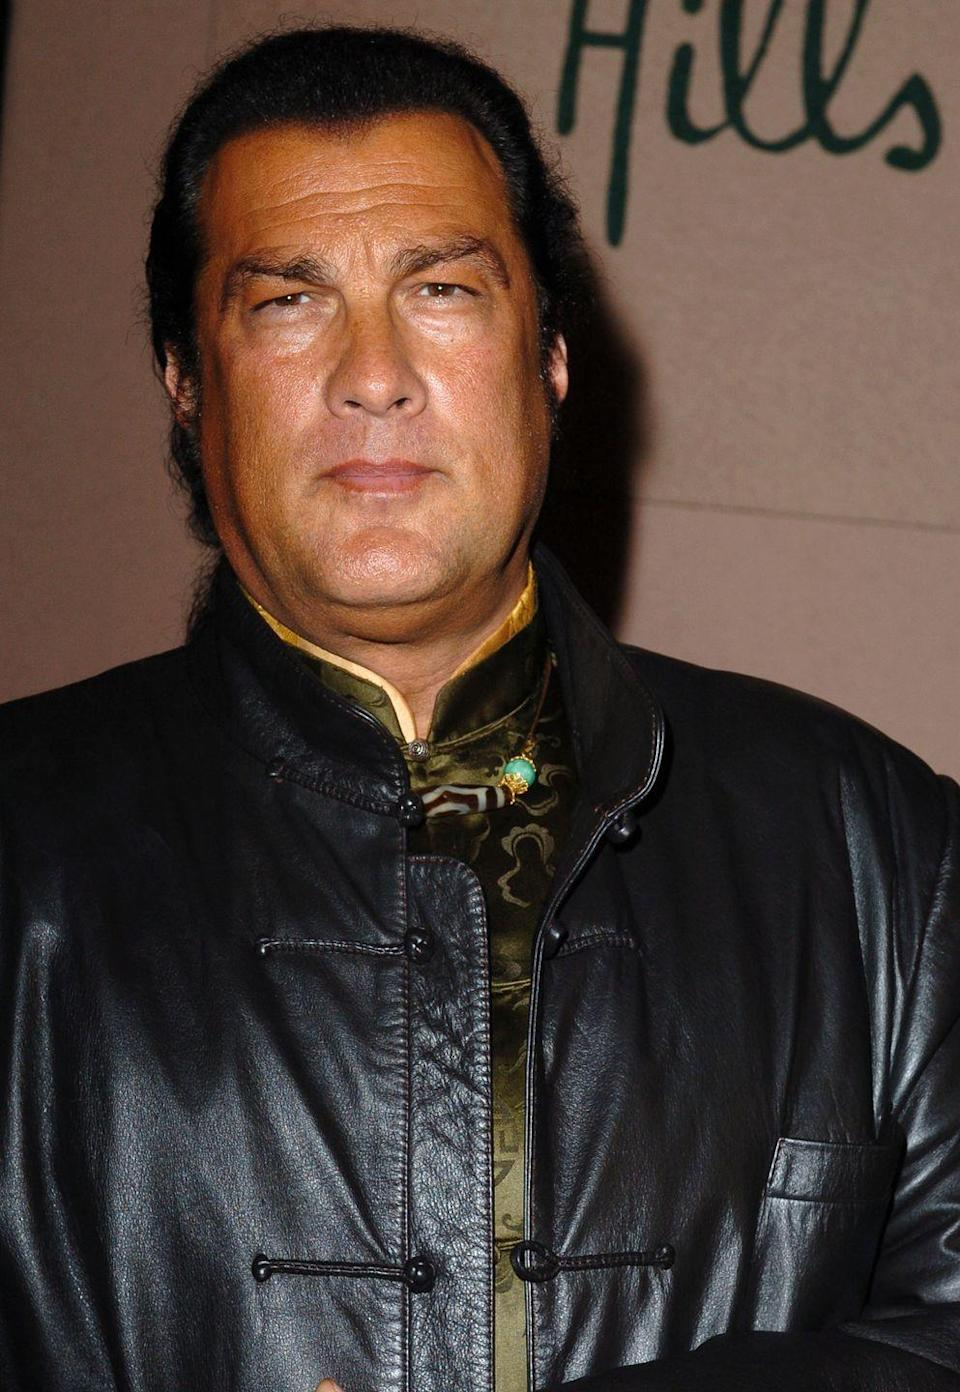 """<p>In August 2018, movie star Steven Seagal was appointed to serve as a <a href=""""https://www.nytimes.com/2018/08/05/world/asia/steven-seagal-putin-russia.html"""" rel=""""nofollow noopener"""" target=""""_blank"""" data-ylk=""""slk:&quot;special representative&quot;"""" class=""""link rapid-noclick-resp"""">""""special representative""""</a> for <a href=""""https://www.facebook.com/487645188112543/posts/850408968502828/"""" rel=""""nofollow noopener"""" target=""""_blank"""" data-ylk=""""slk:&quot;Russian-US humanitarian ties&quot;"""" class=""""link rapid-noclick-resp"""">""""Russian-US humanitarian ties""""</a> by the Russian Foreign Ministry. The dual citizenship holder told <em>RT</em> (according to <a href=""""https://www.reuters.com/article/us-russia-usa-seagal/russia-tasks-hollywood-actor-seagal-with-improving-u-s-ties-idUSKBN1KP0NP?utm_source=reddit.com"""" rel=""""nofollow noopener"""" target=""""_blank"""" data-ylk=""""slk:Reuters"""" class=""""link rapid-noclick-resp"""">Reuters</a>), """"I've always had a very strong desire to do all I can to help improve Russian-American relations.""""</p>"""